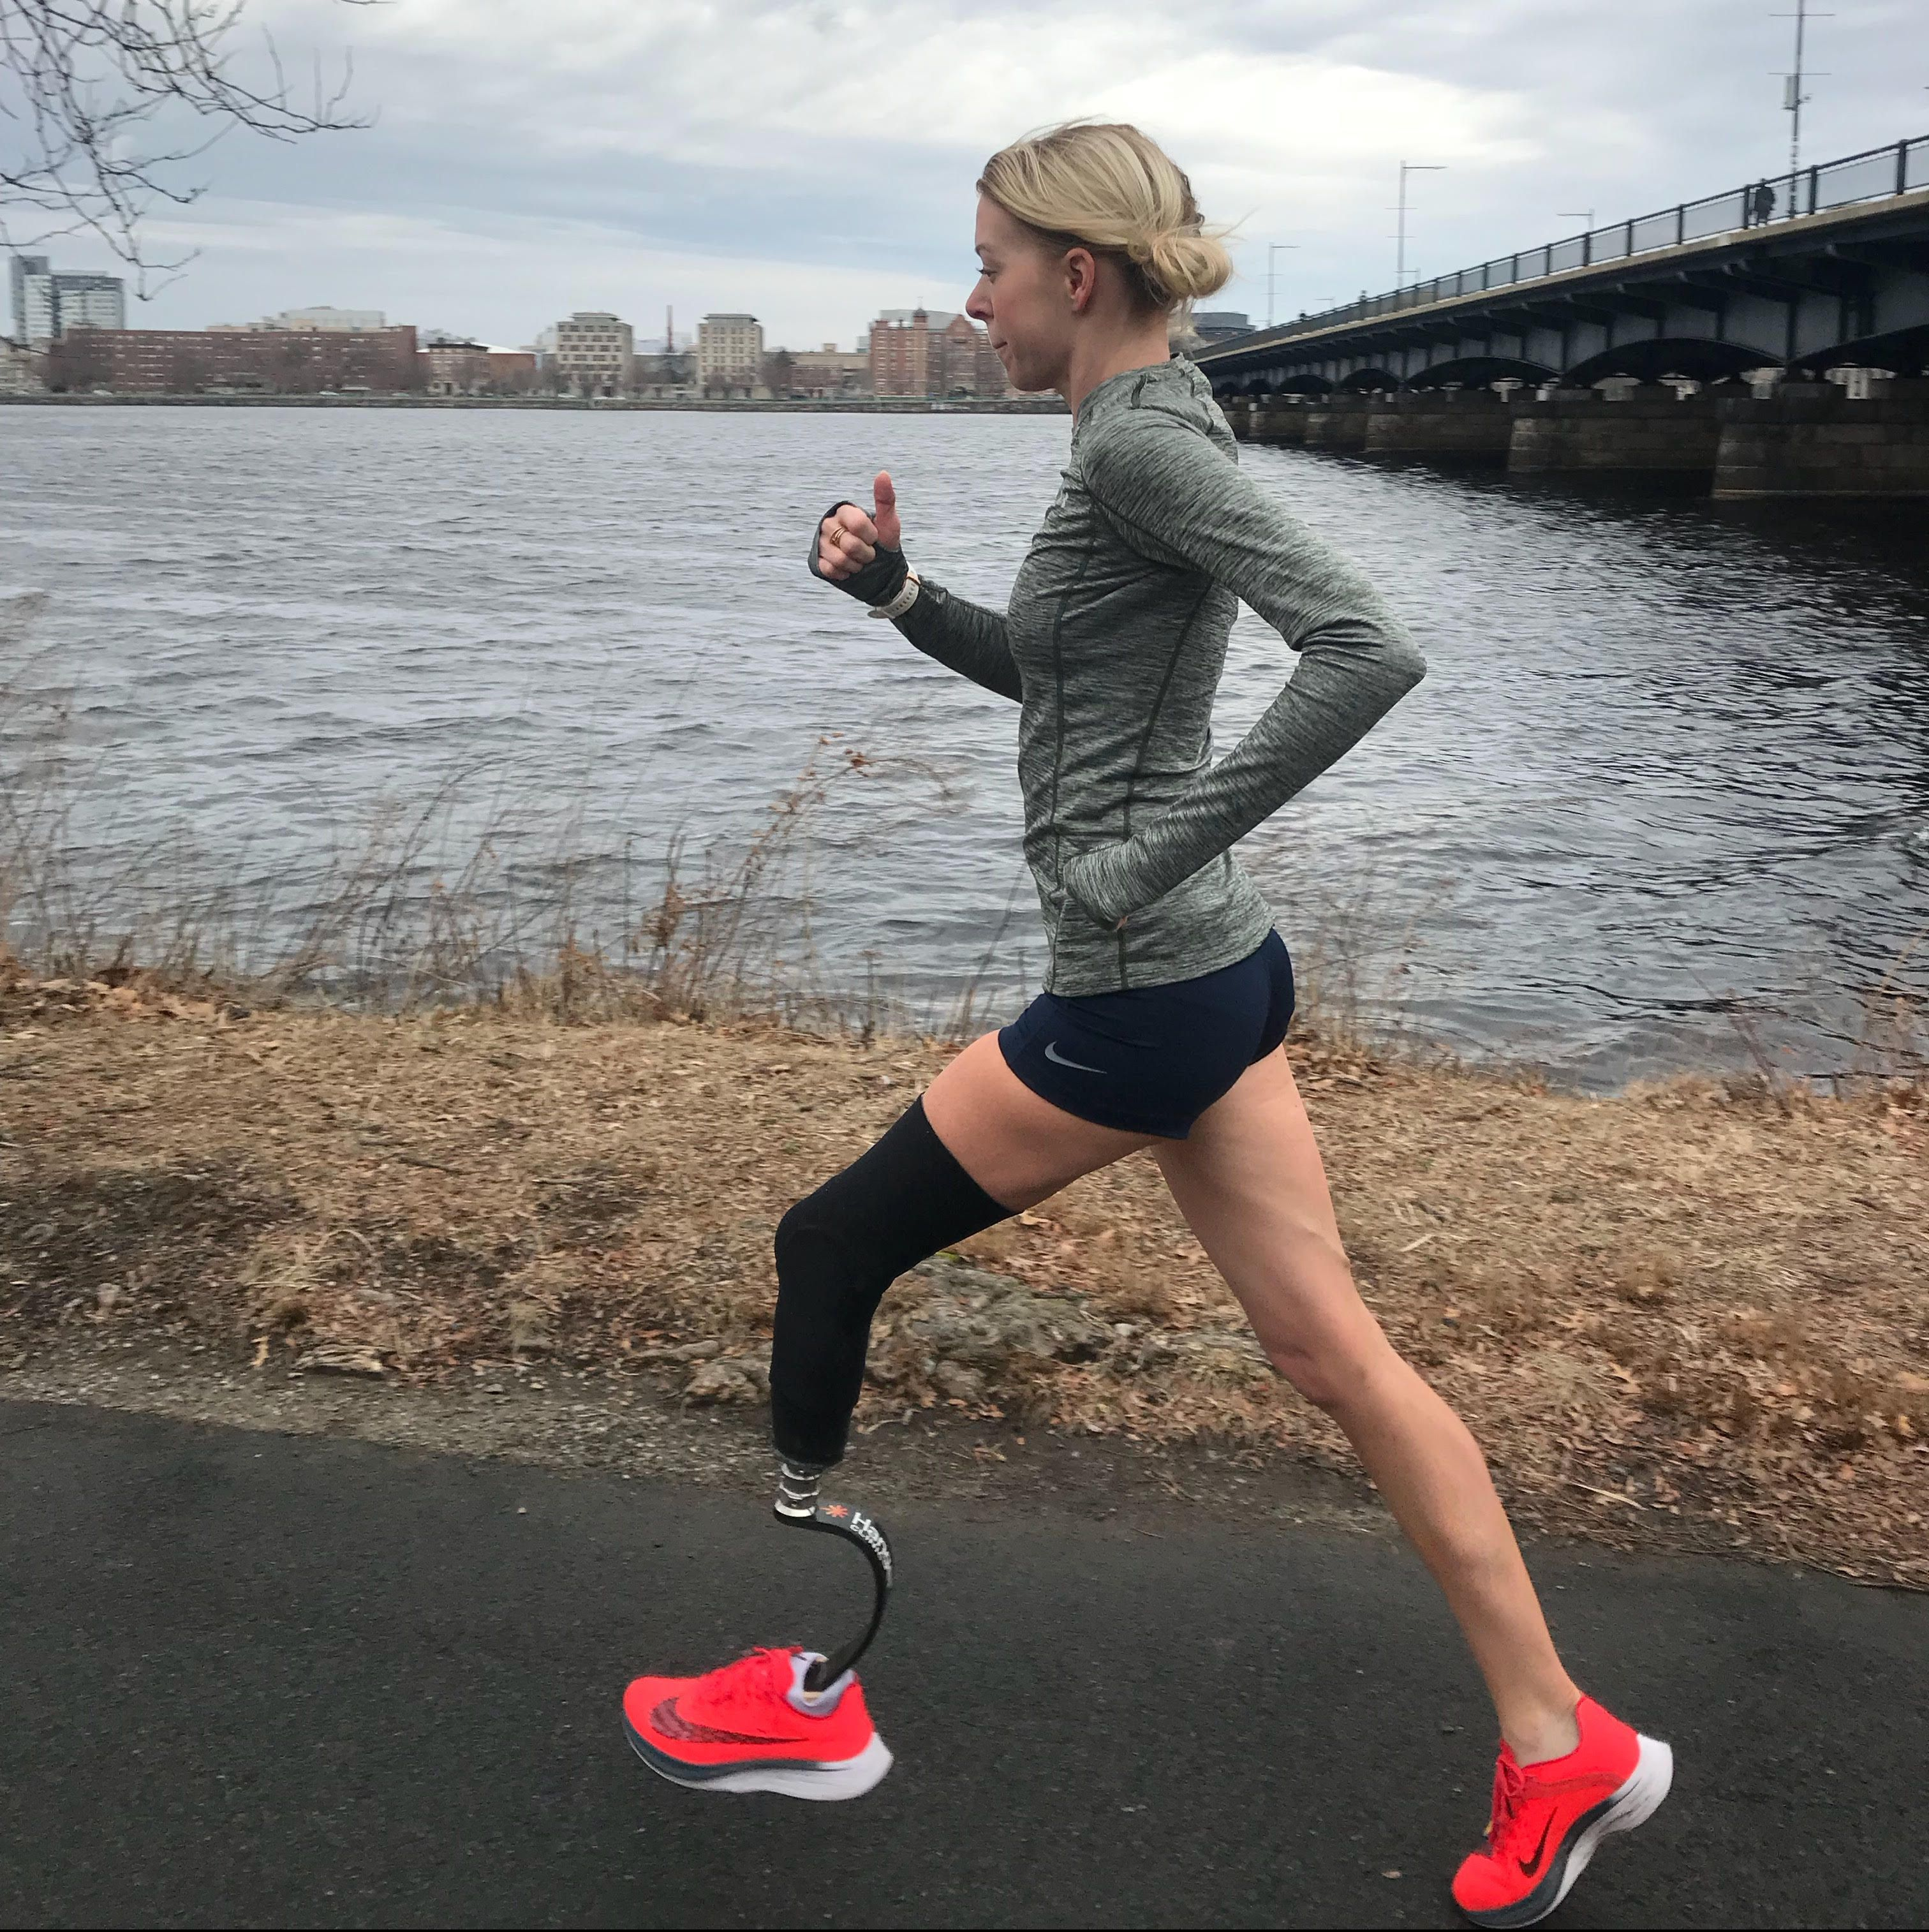 Boston Bombing Survivor Adrianne Haslet After Car Strike: Don't Call Me a 'Victim'